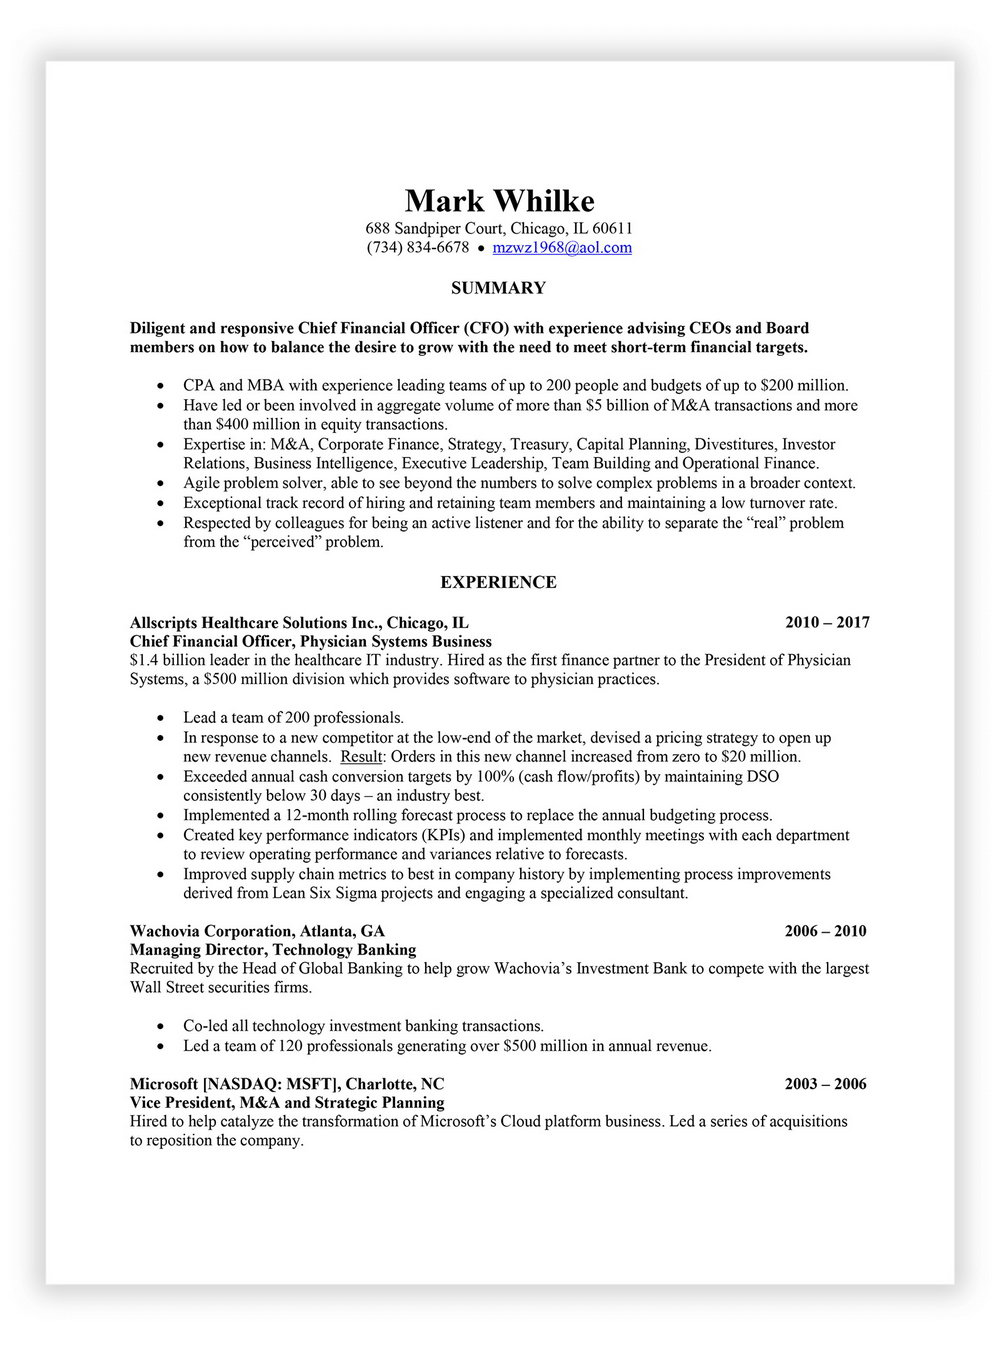 Resume Writing Service Charlotte Nc